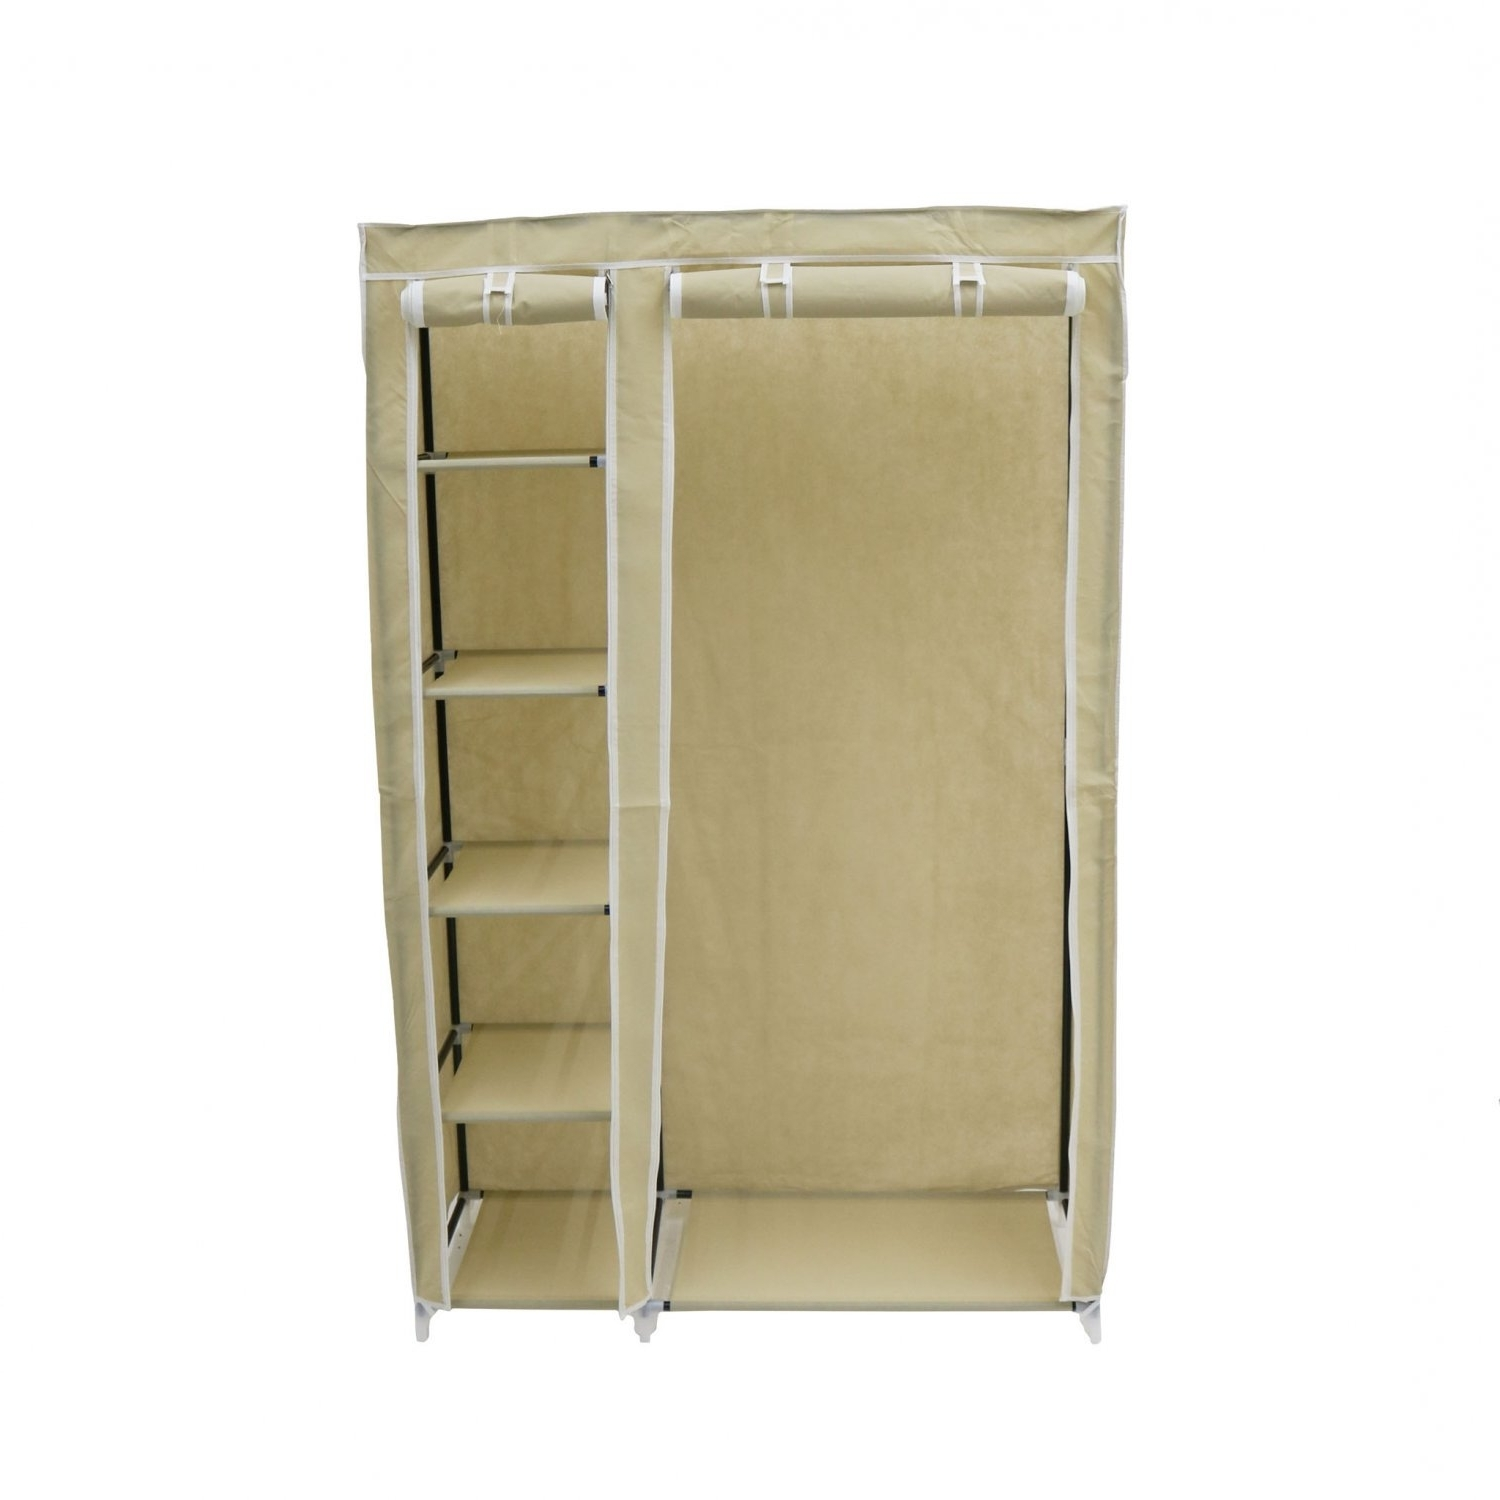 Widely Used Double Cream Canvas Wardrobe Clothes Rail Hanging Storage Closet Throughout Double Up Wardrobes Rails (View 14 of 15)